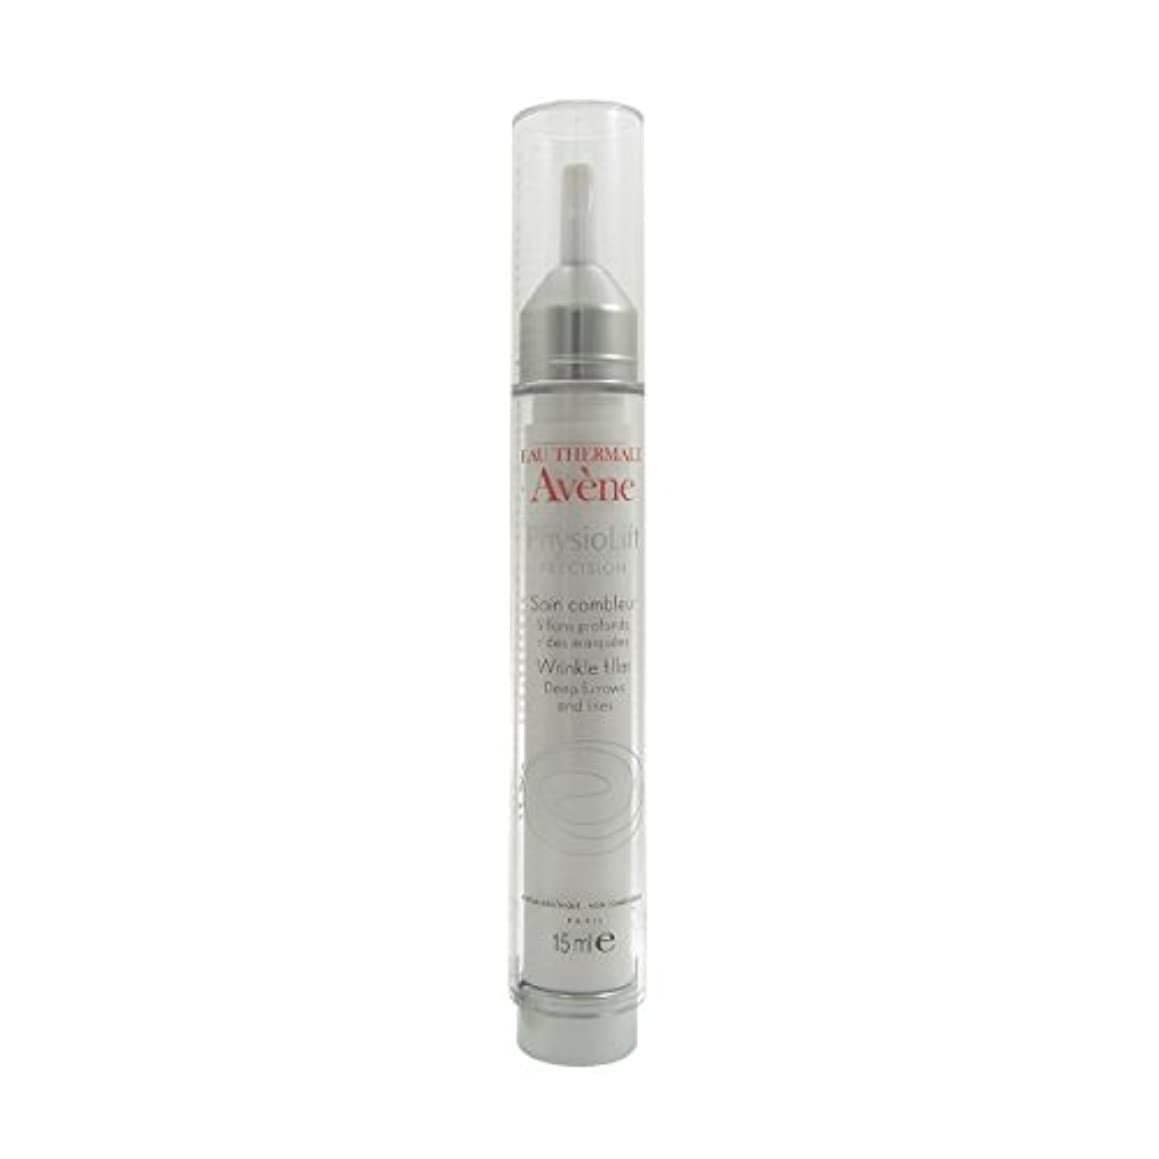 りんご父方の分数Avene Physiolift Precision Filling Care 15ml [並行輸入品]